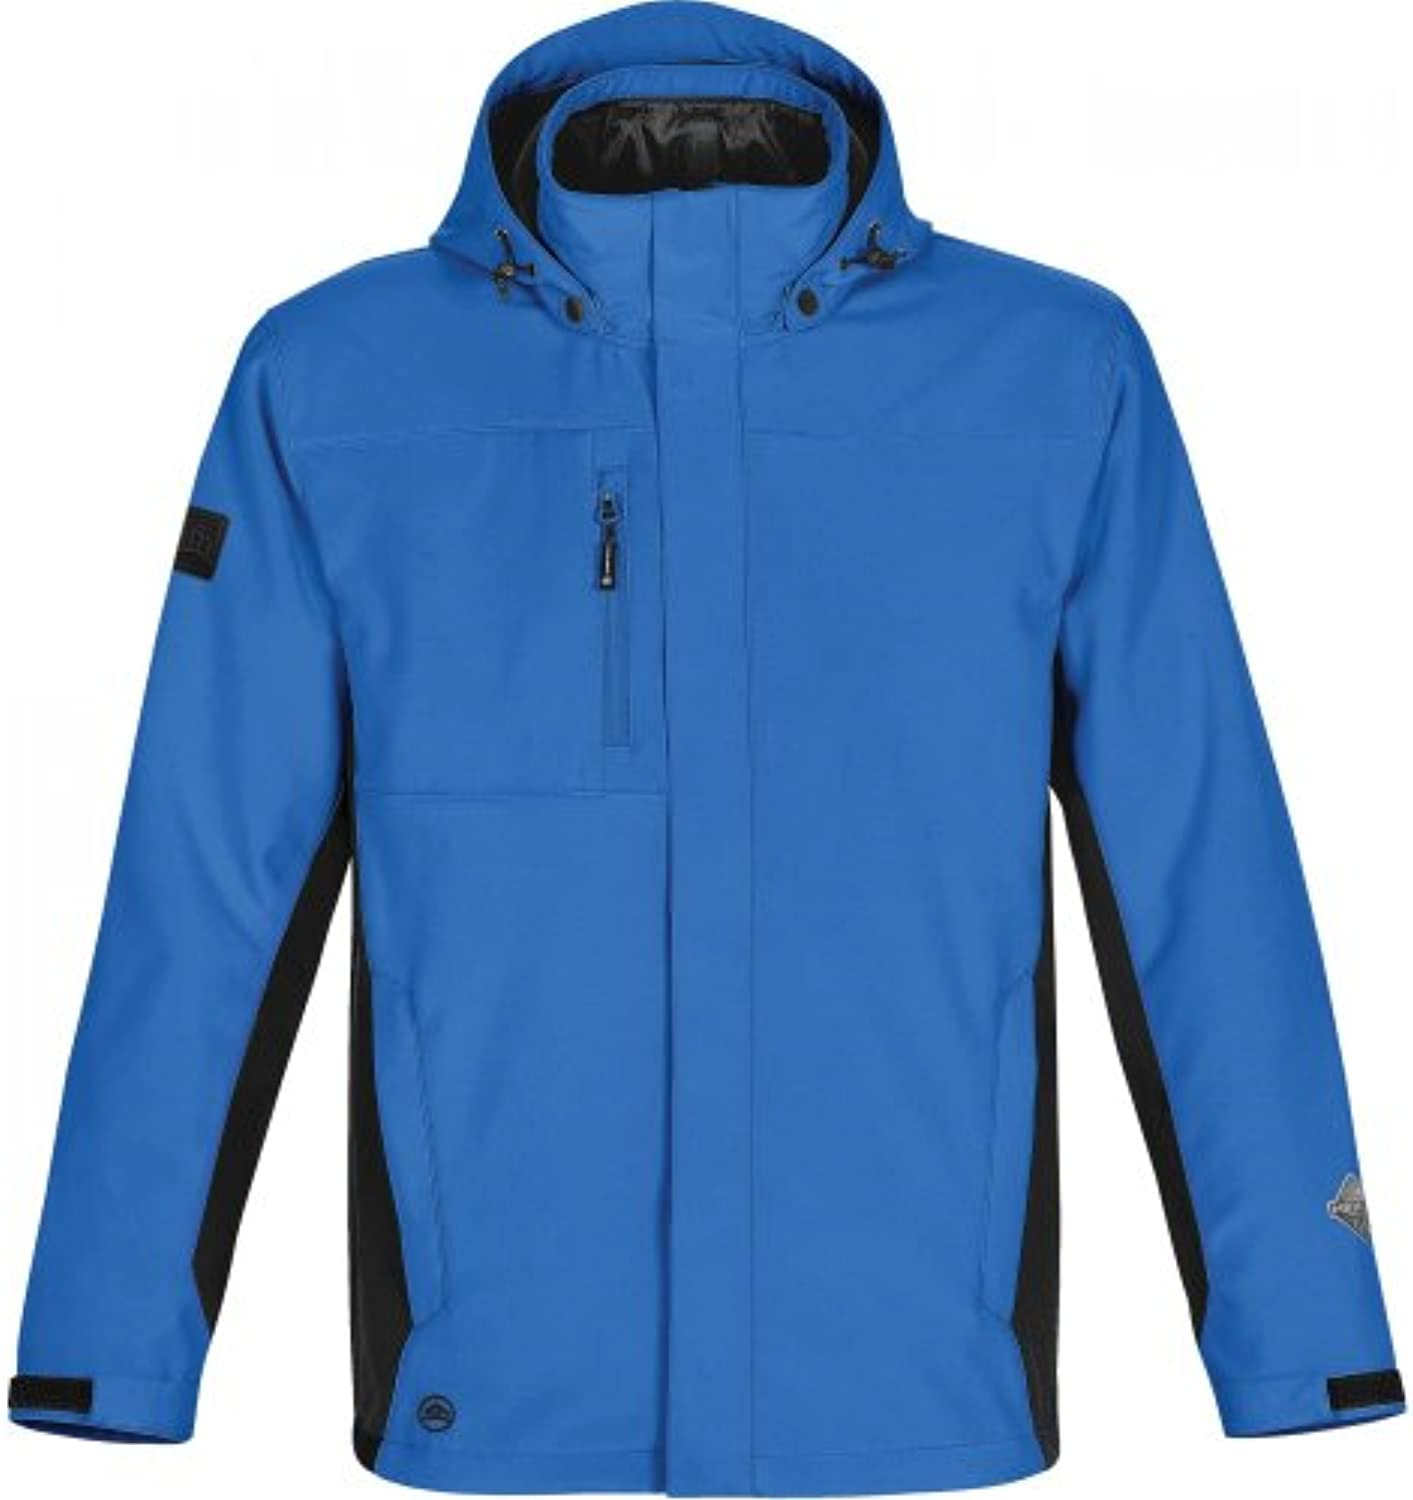 Stormtech - Uomo Atmosphere - Giacca 3 in 1 - Uomo - fd5048 ... 36af8d405d9